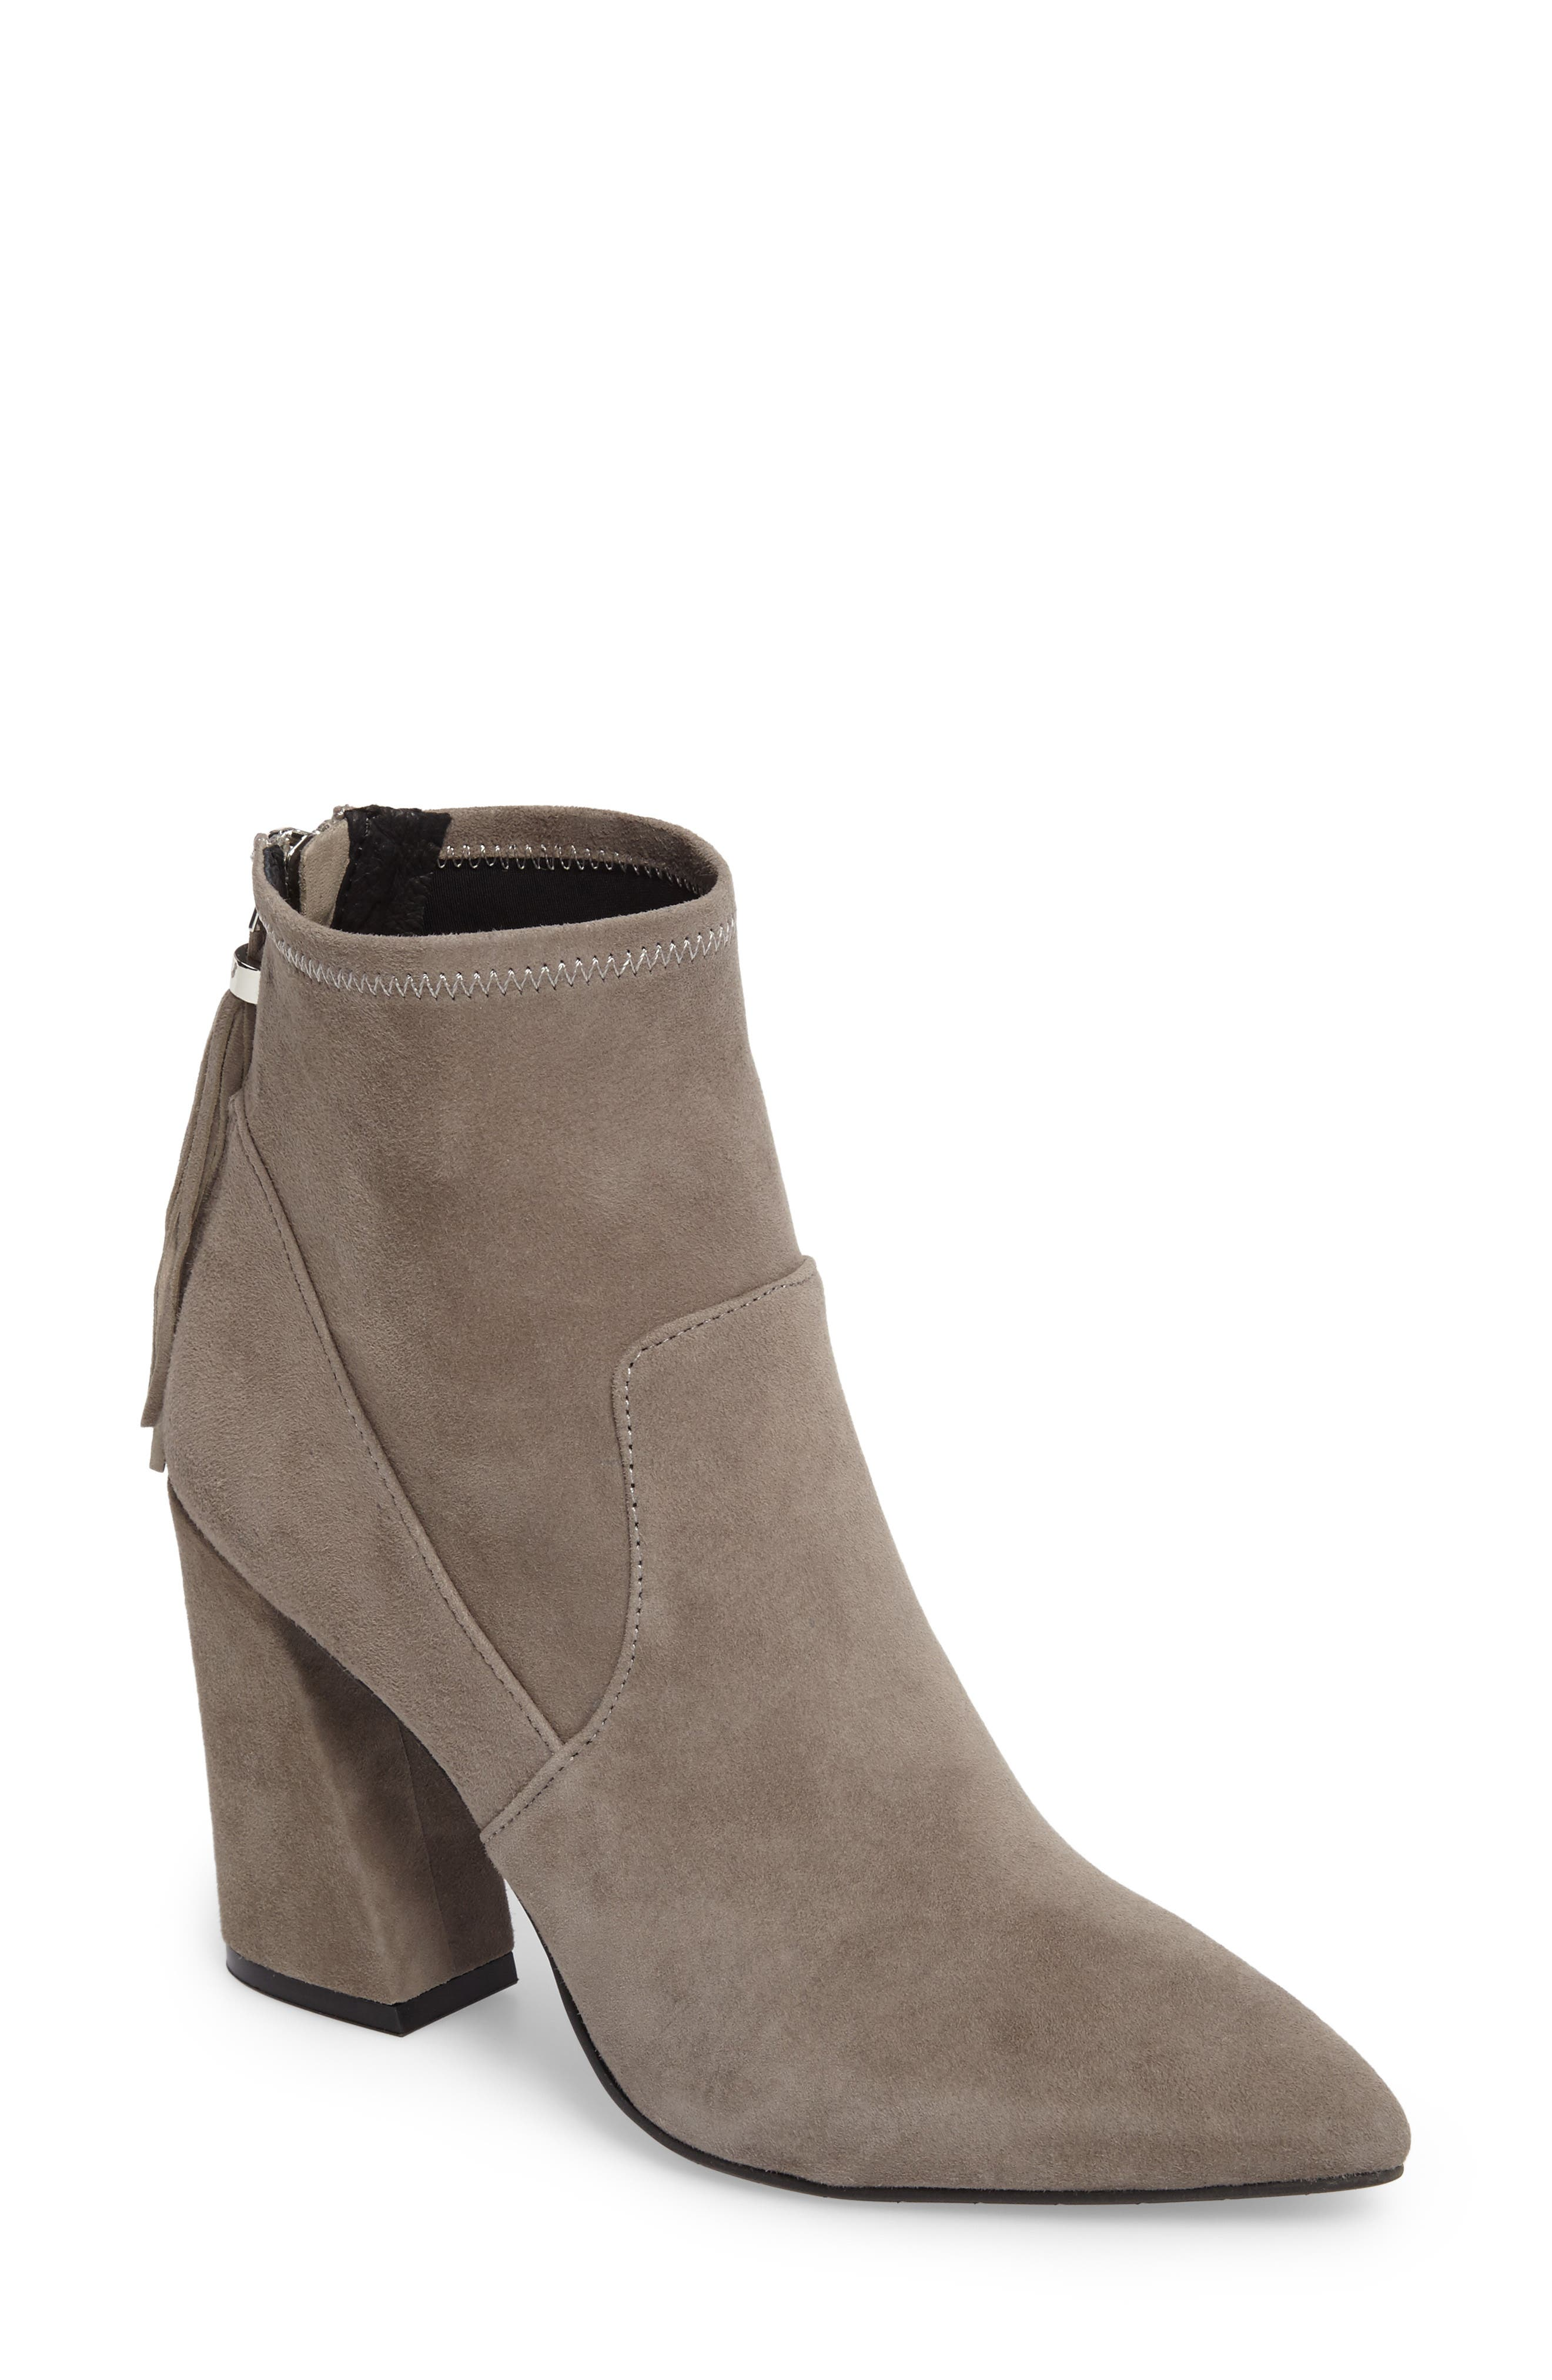 Gracelyn Pointy Toe Bootie,                             Main thumbnail 1, color,                             Elephant Suede